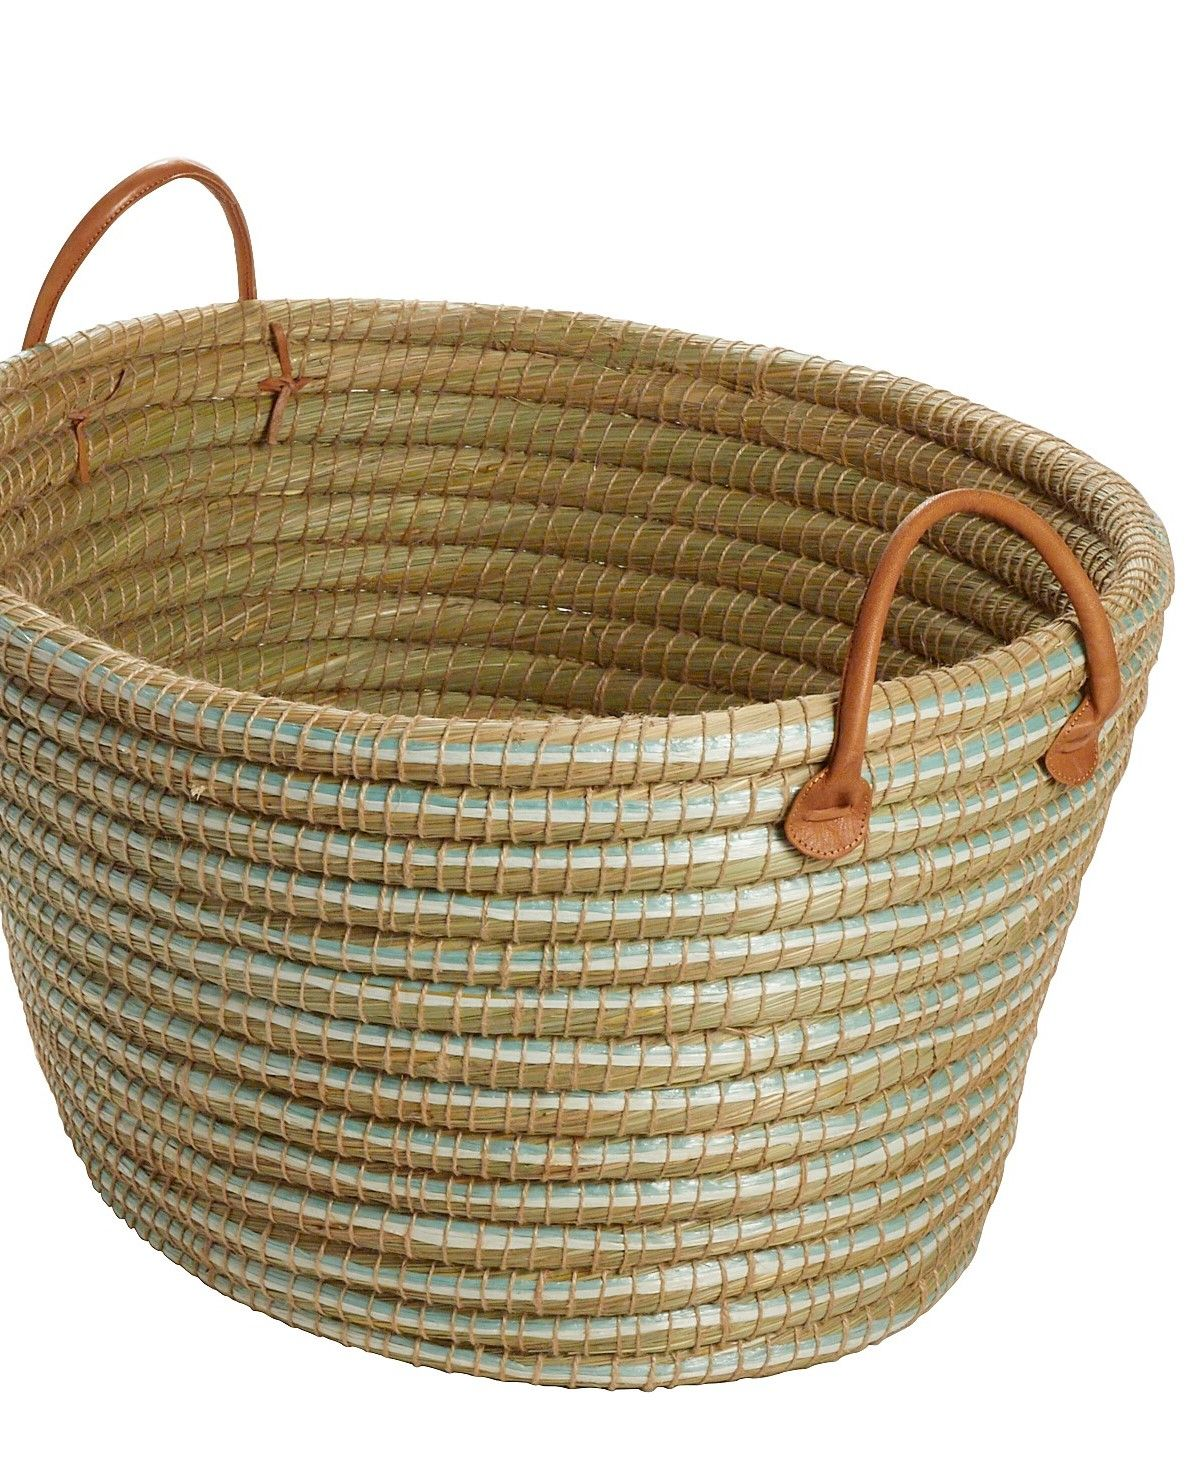 Calm Mood Laundry Basket Basket First Apartment Gift Wicker